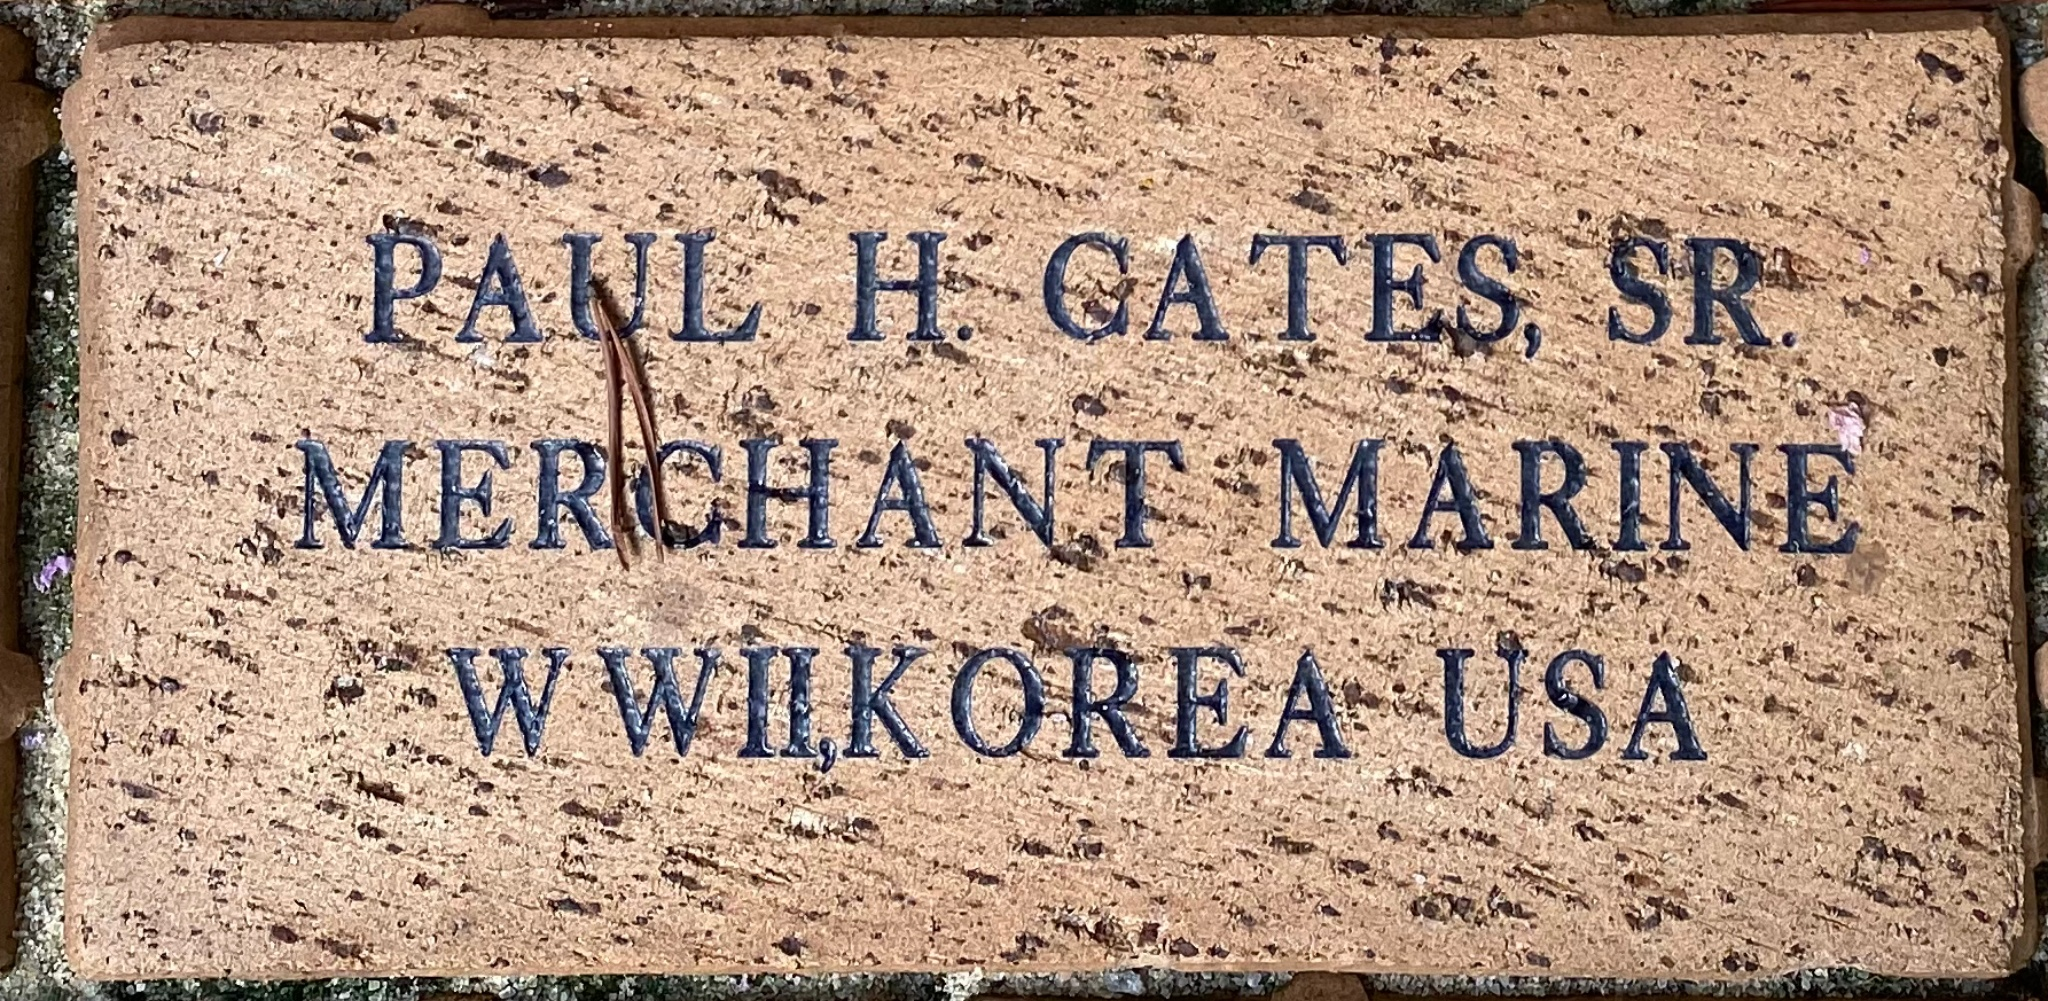 PAUL H GATES SR MERCHANT MARINE WWII,KOREA US ARMY